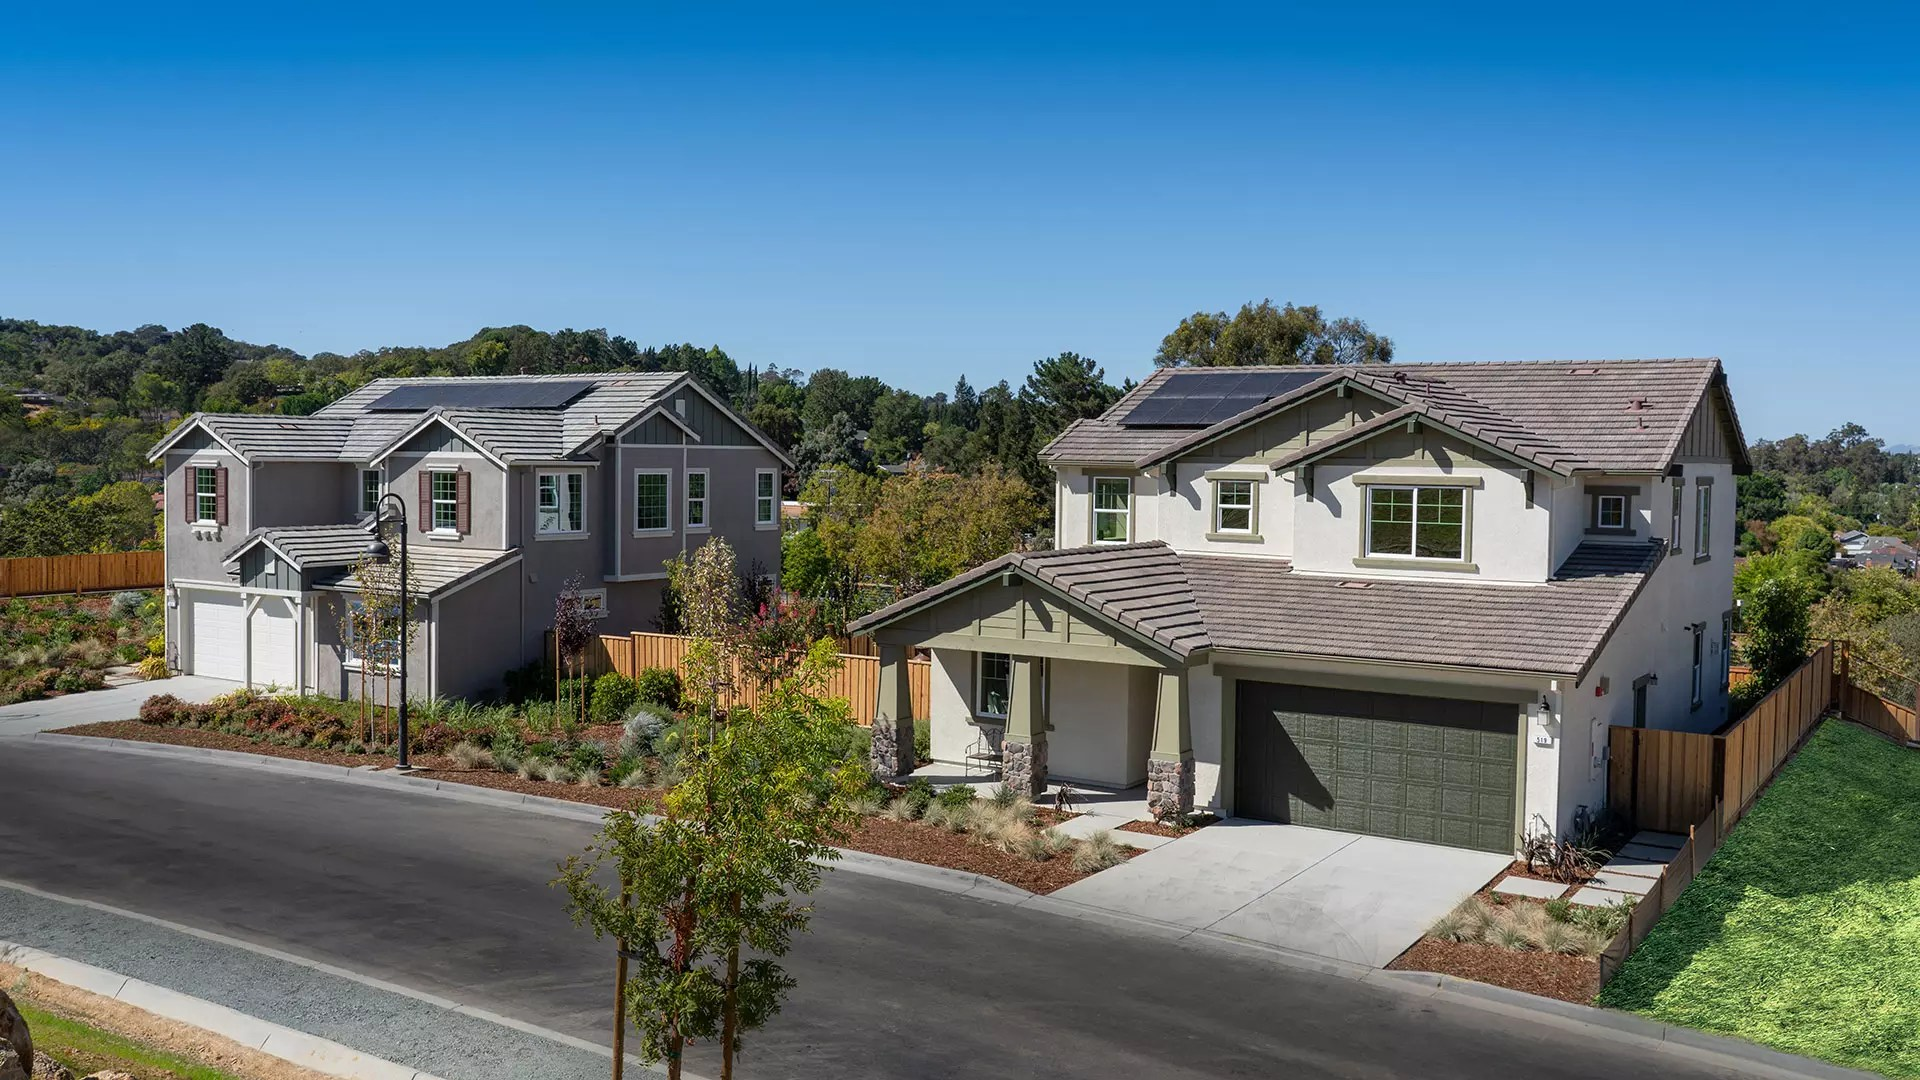 New Homes in Pleasant Hill  CA  Tananger Heights from DeNova Homes